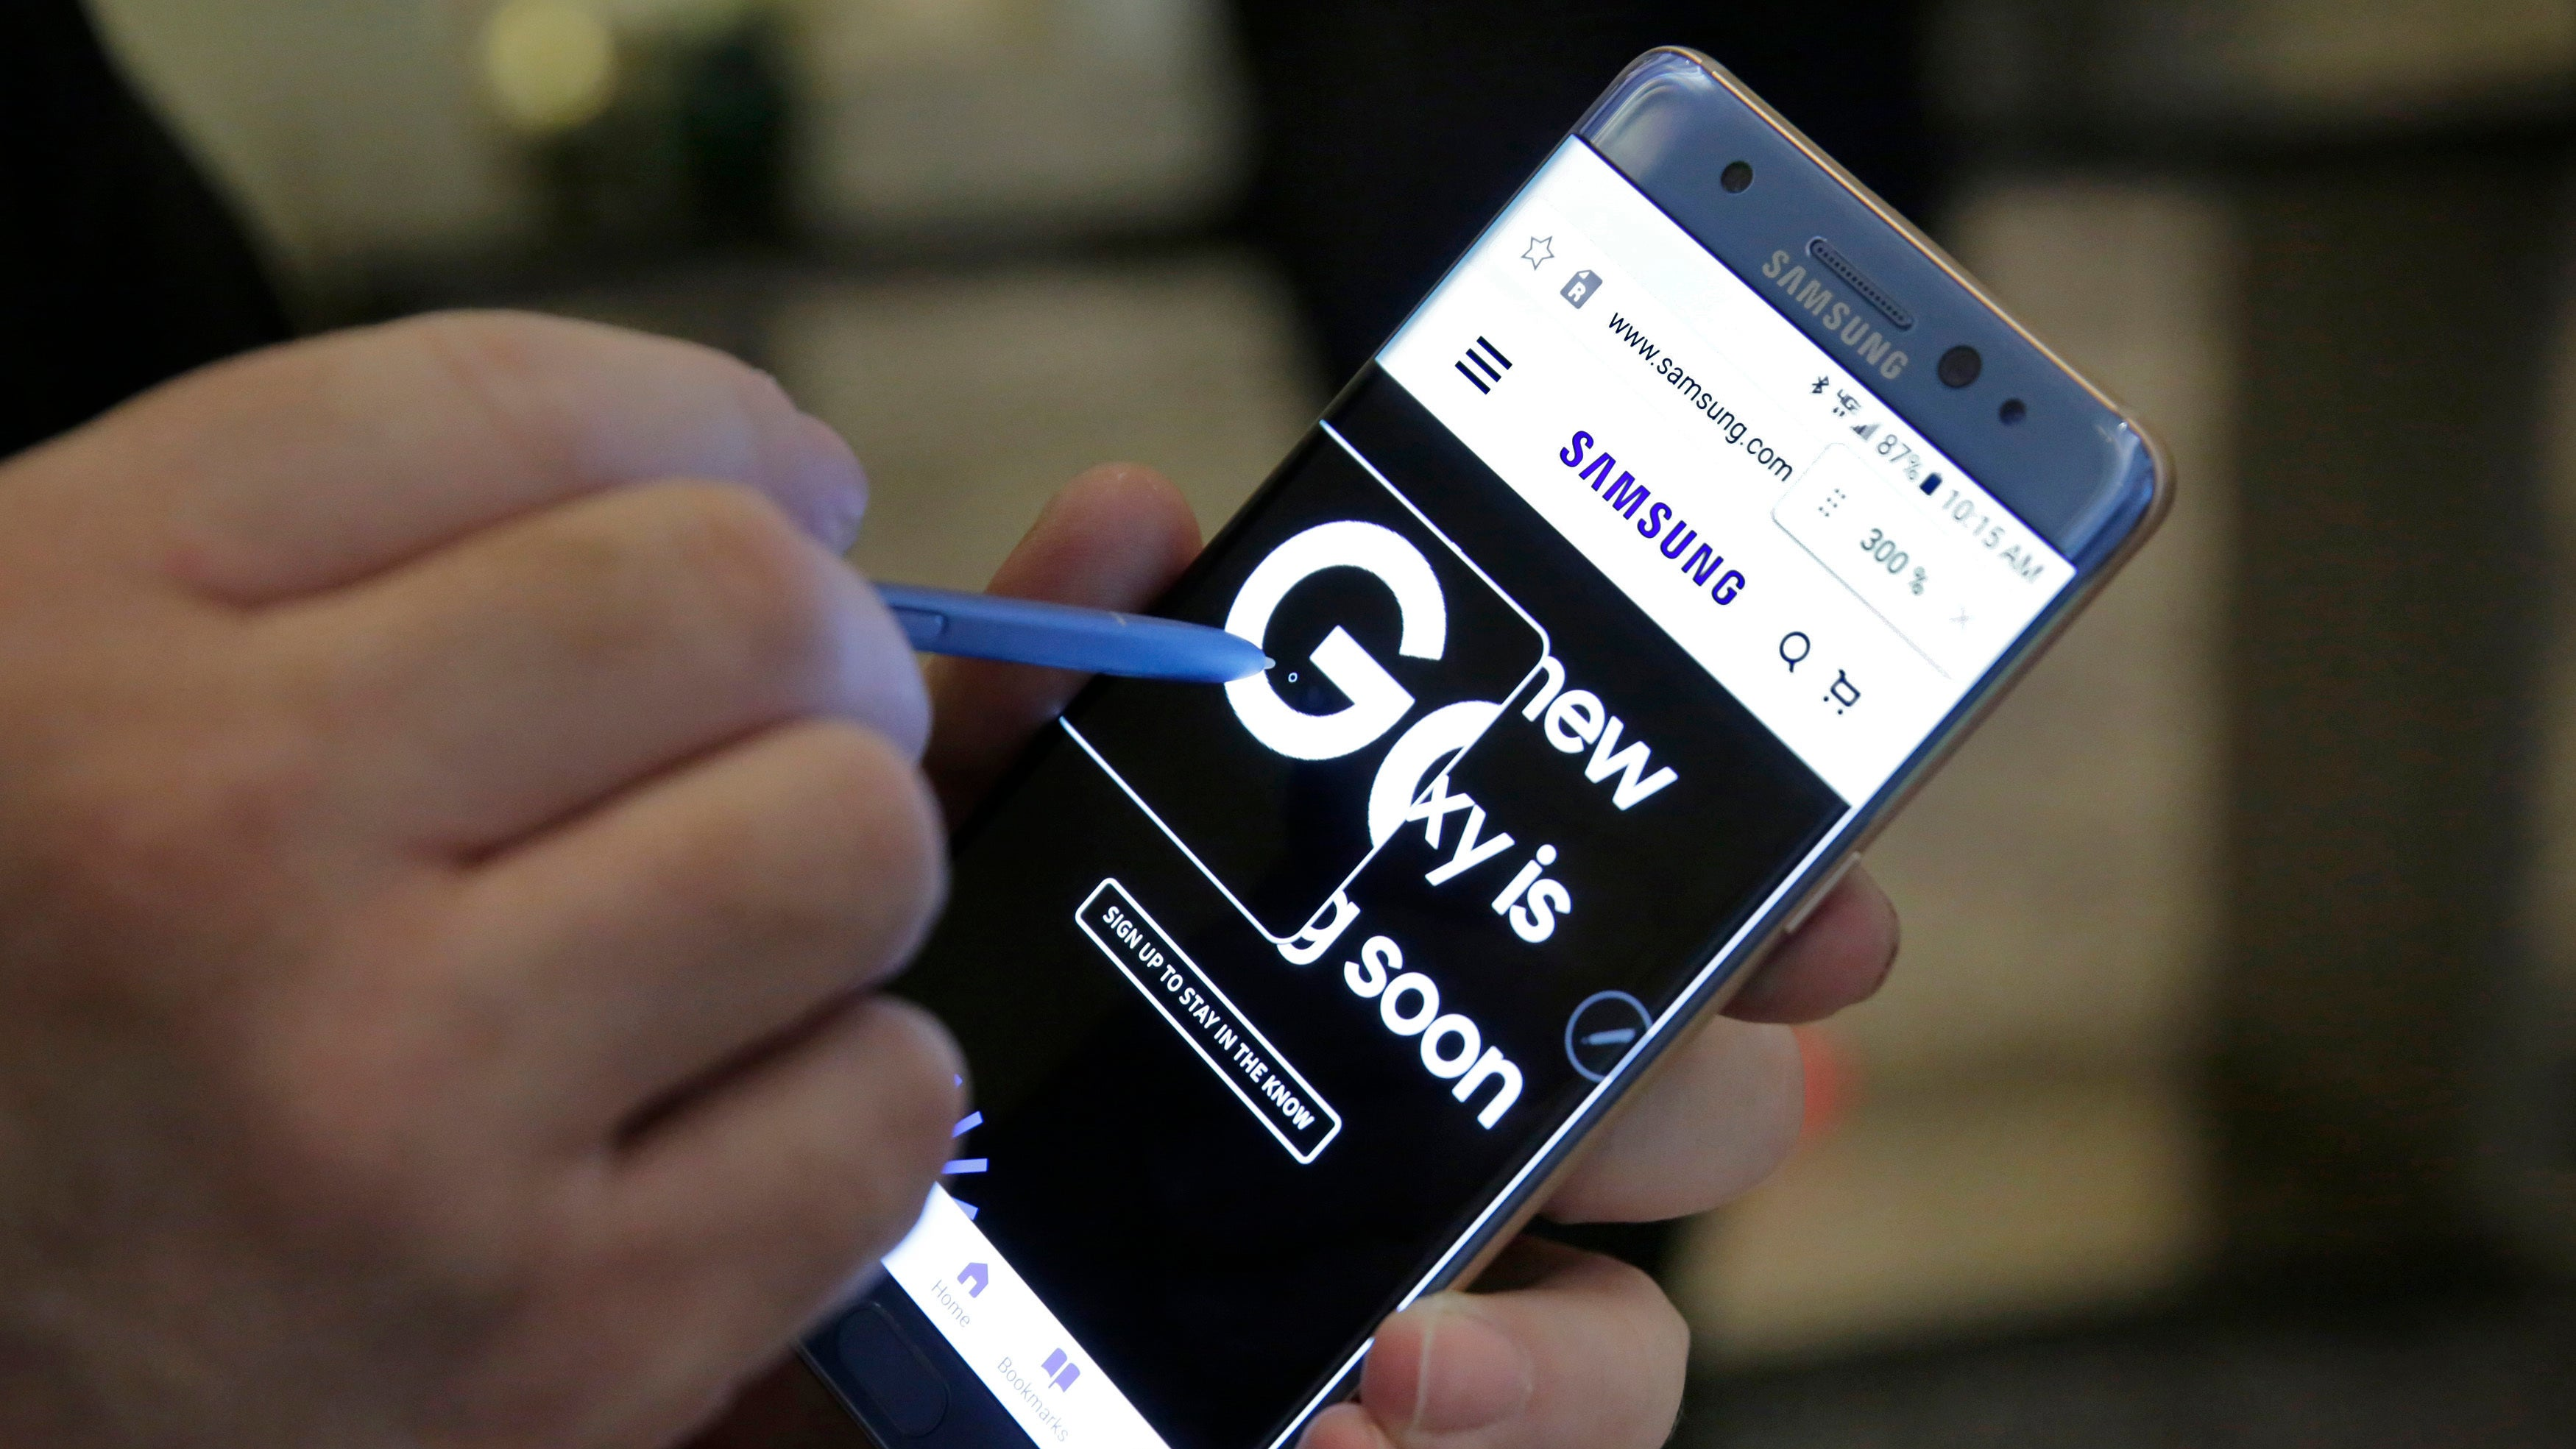 Wait, Are The New Note 7s Overheating Too?